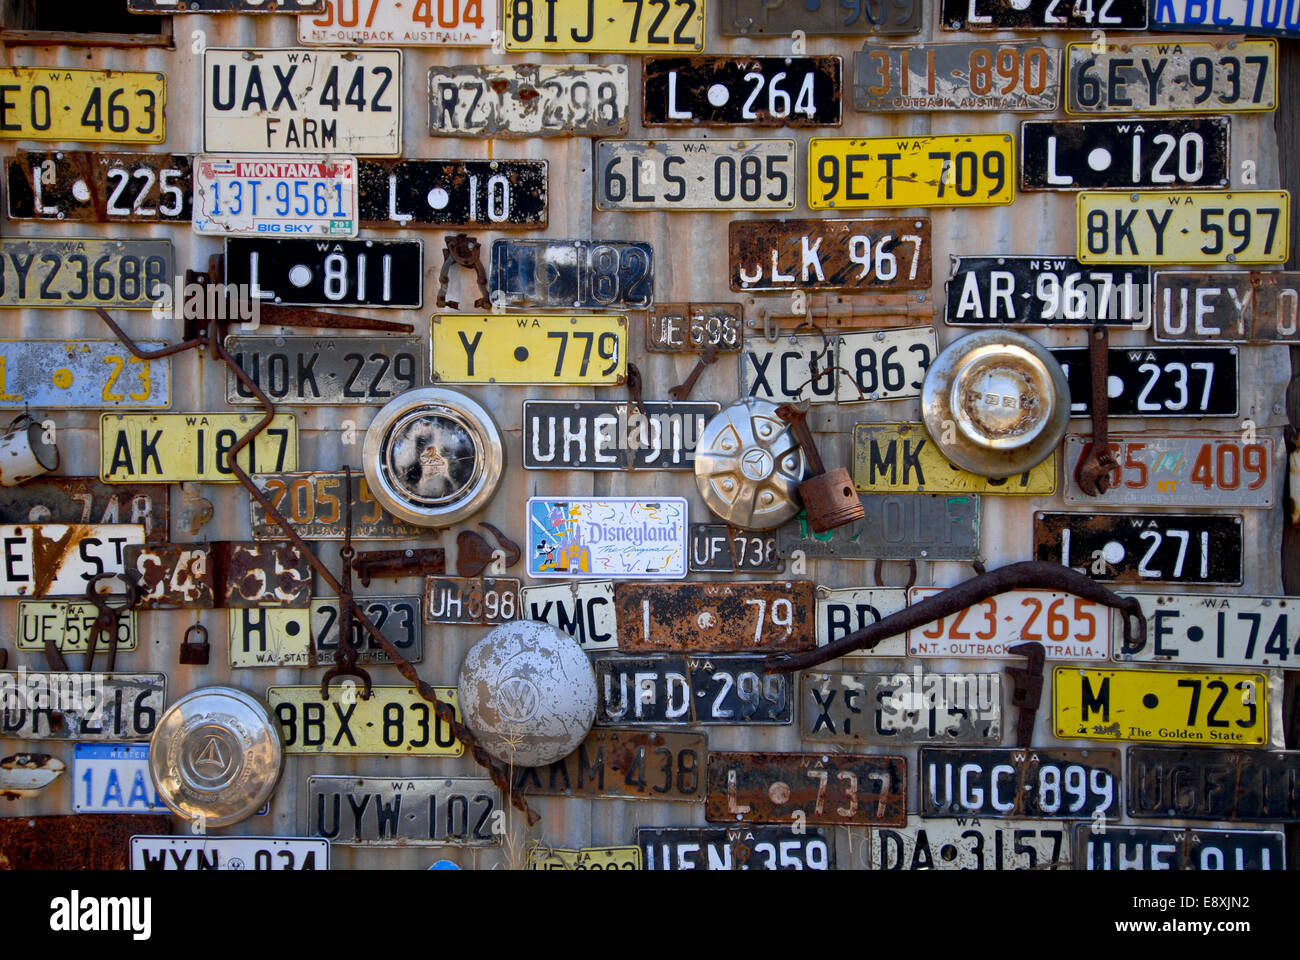 Auto signs on the wall in Westaustralie - Stock Image